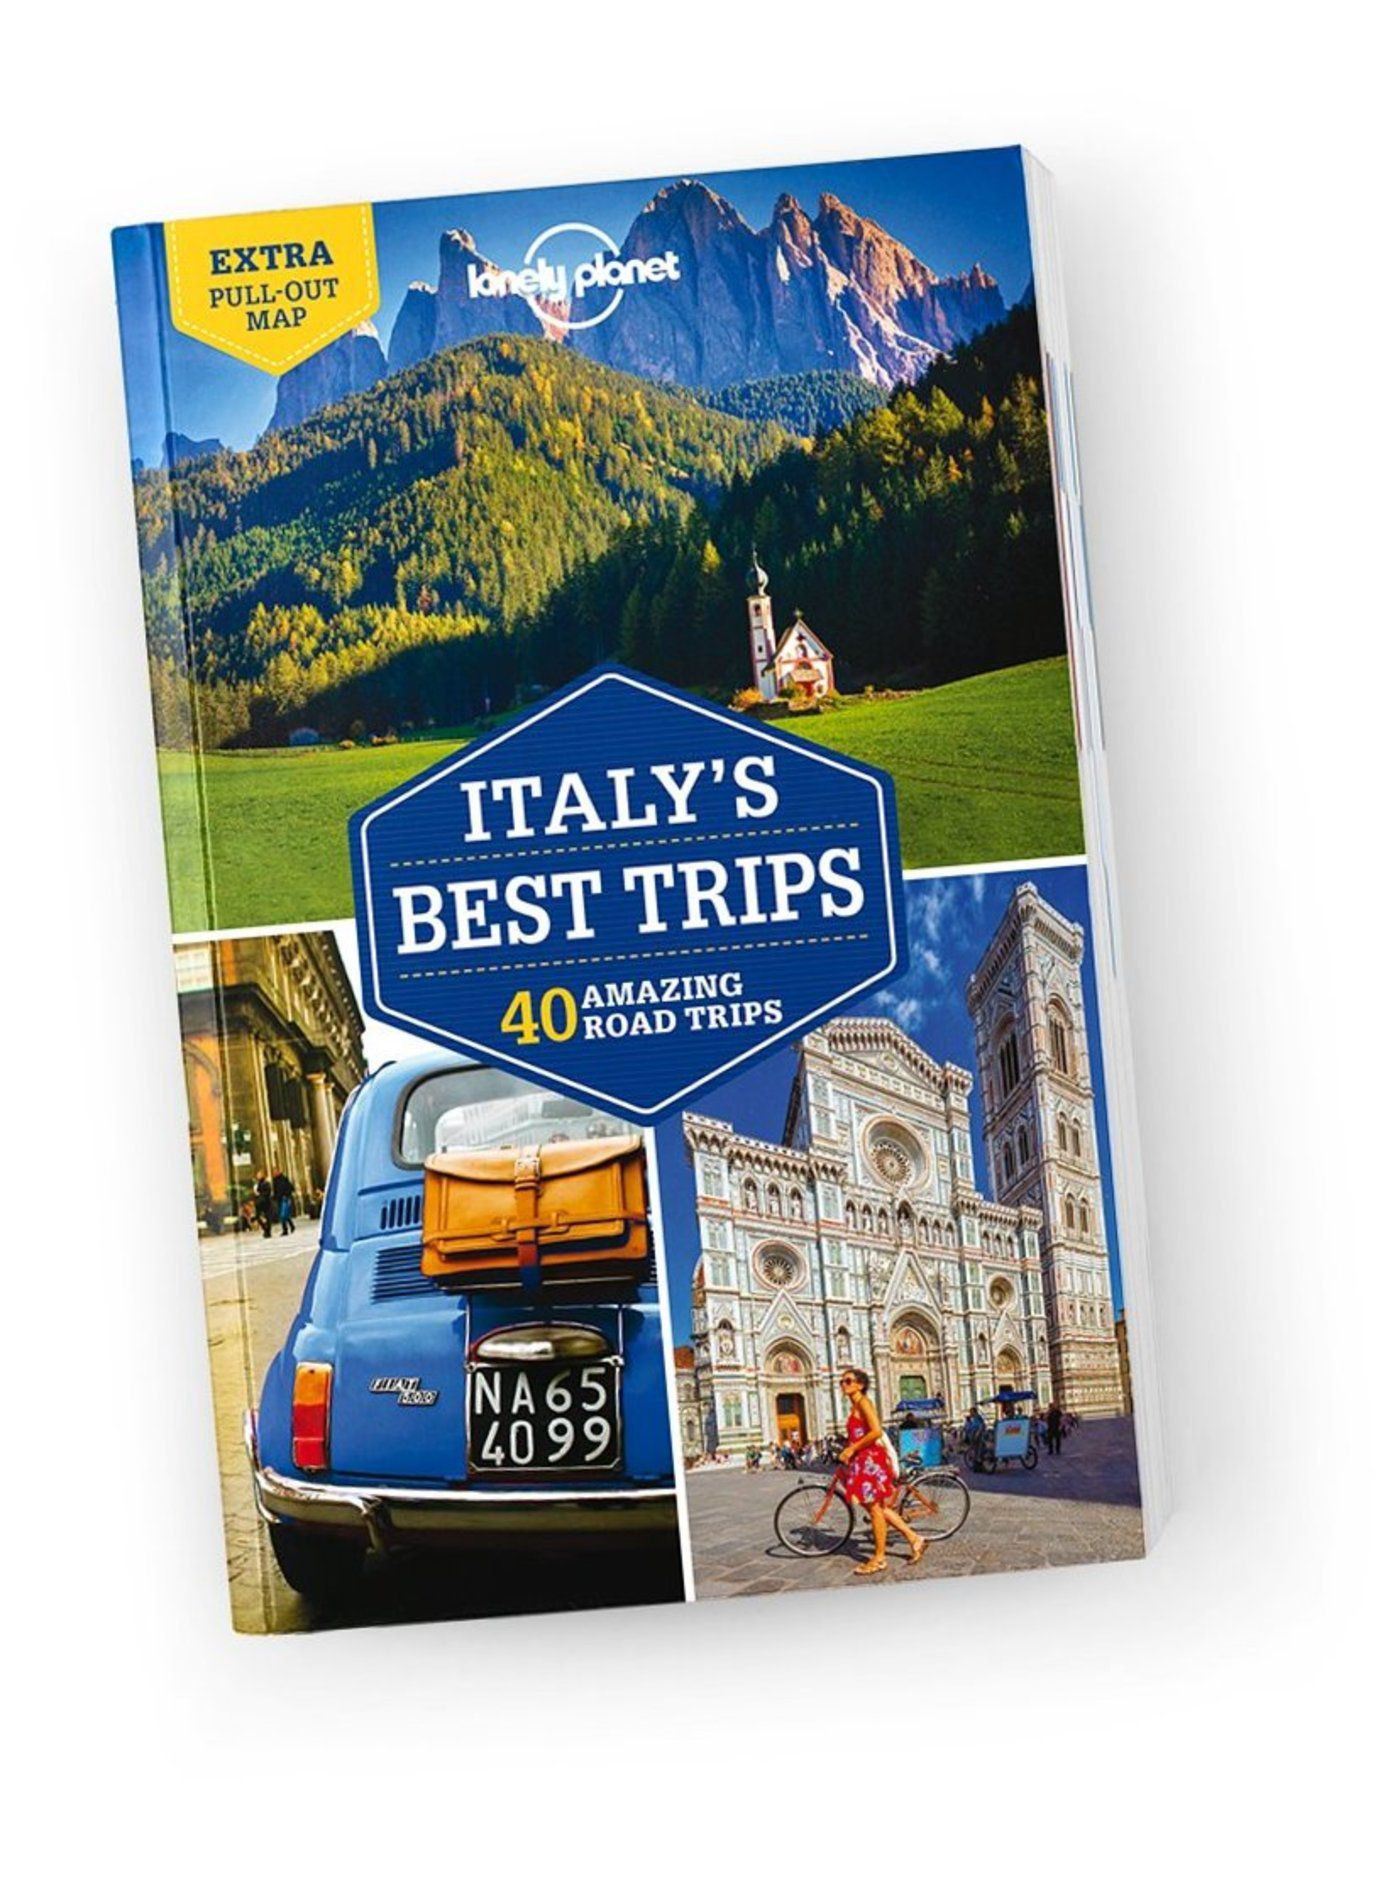 Italy's Best Trips - Northern Italy Trips (PDF Chapter), 2nd Edition Mar 2017 by Lonely Planet 9781786573216003